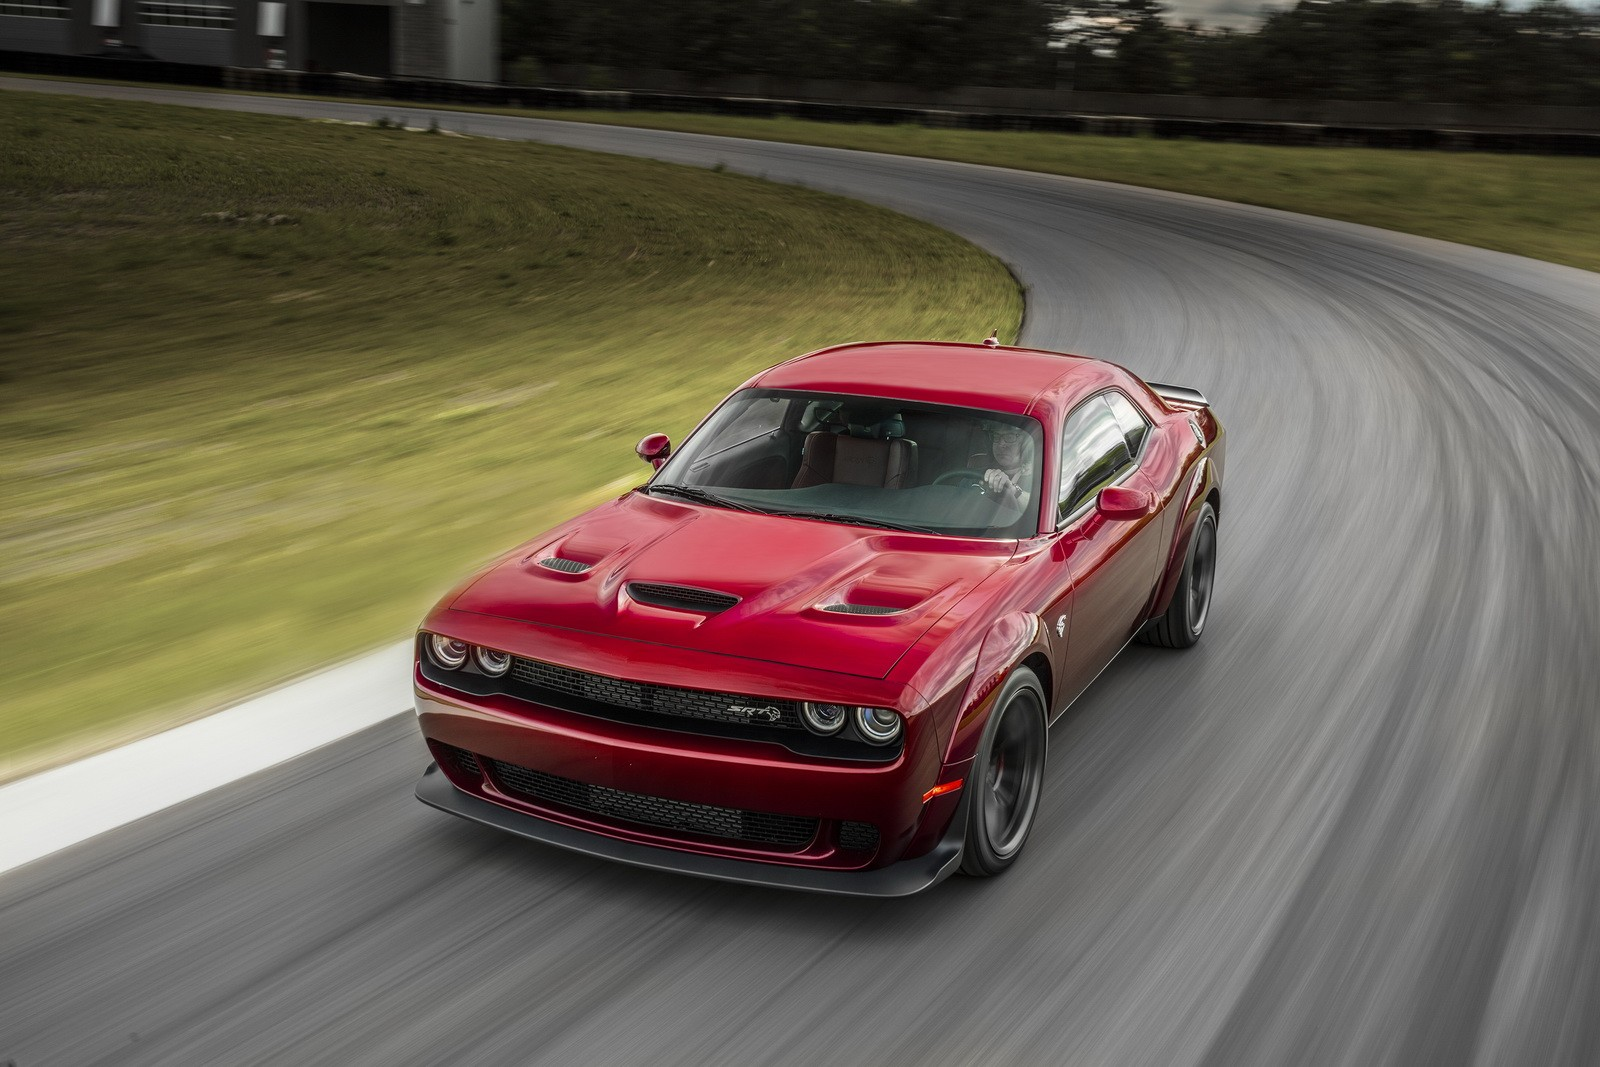 Image Result For The Challenger Srt Hellcat Redesign